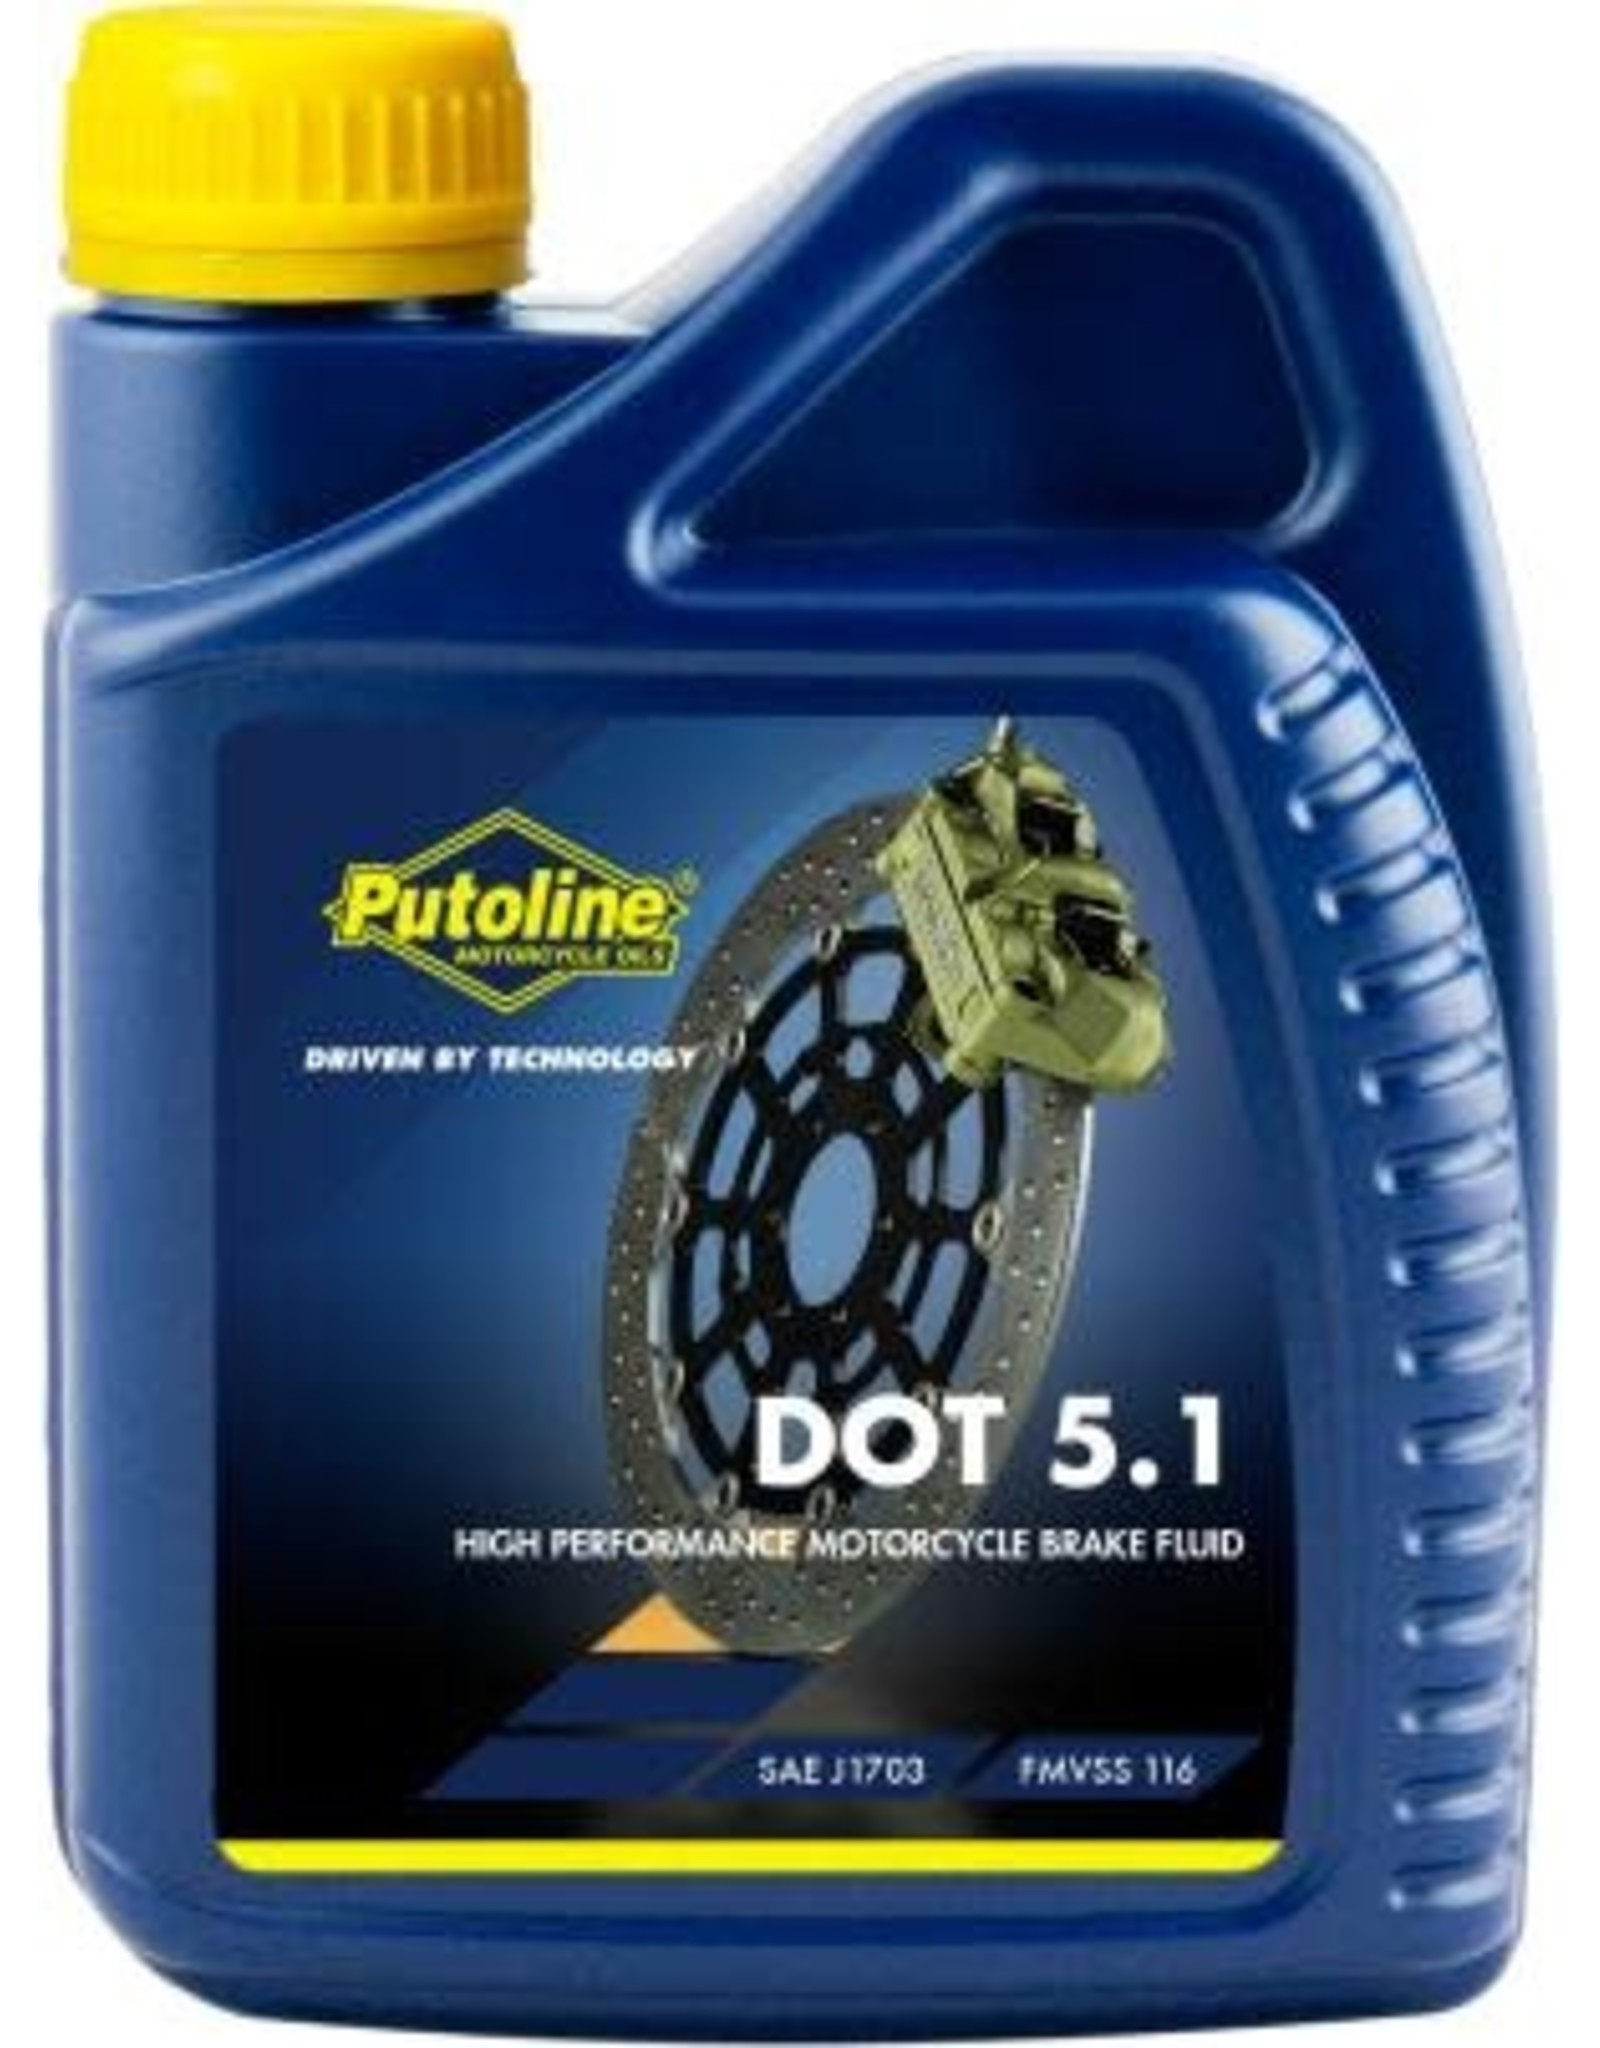 Putoline BRAKE FLUID DOT 5.1 500ML